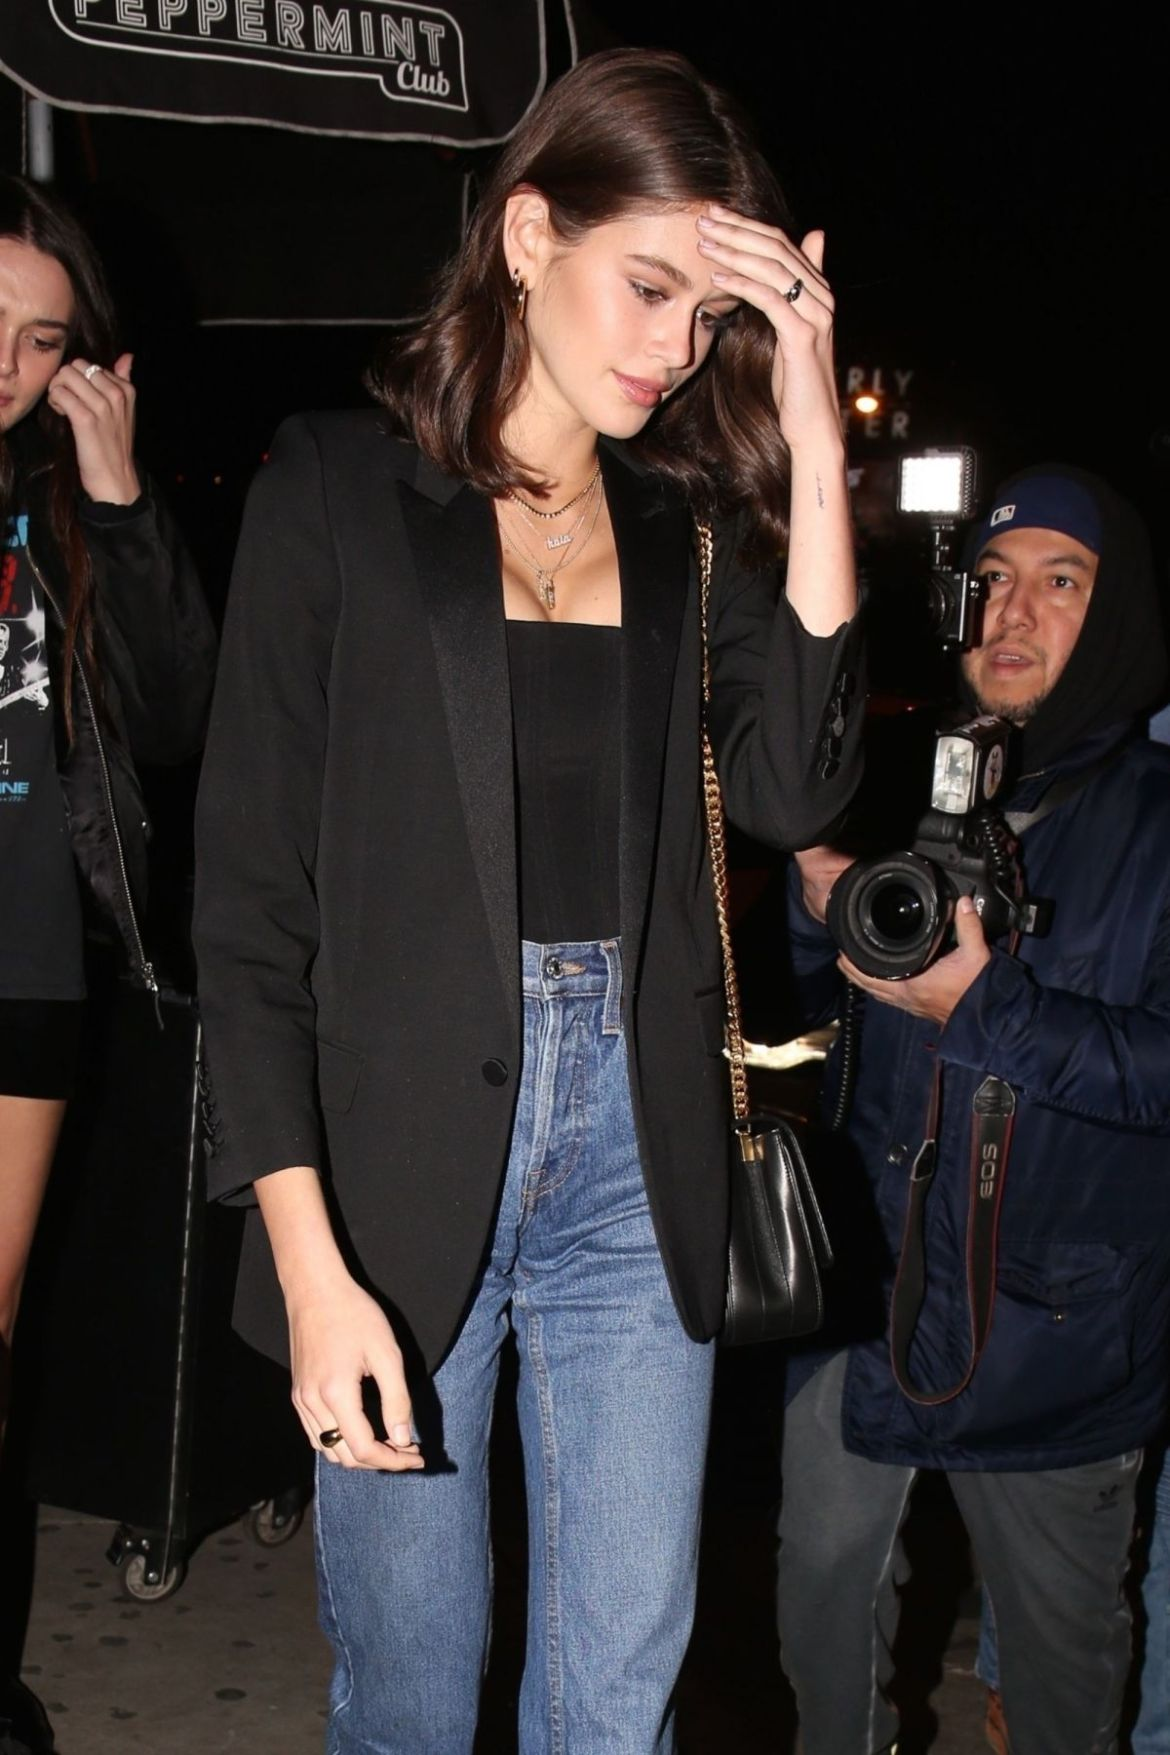 Kaia Gerber Leaving the Peppermint Club in West Hollywood